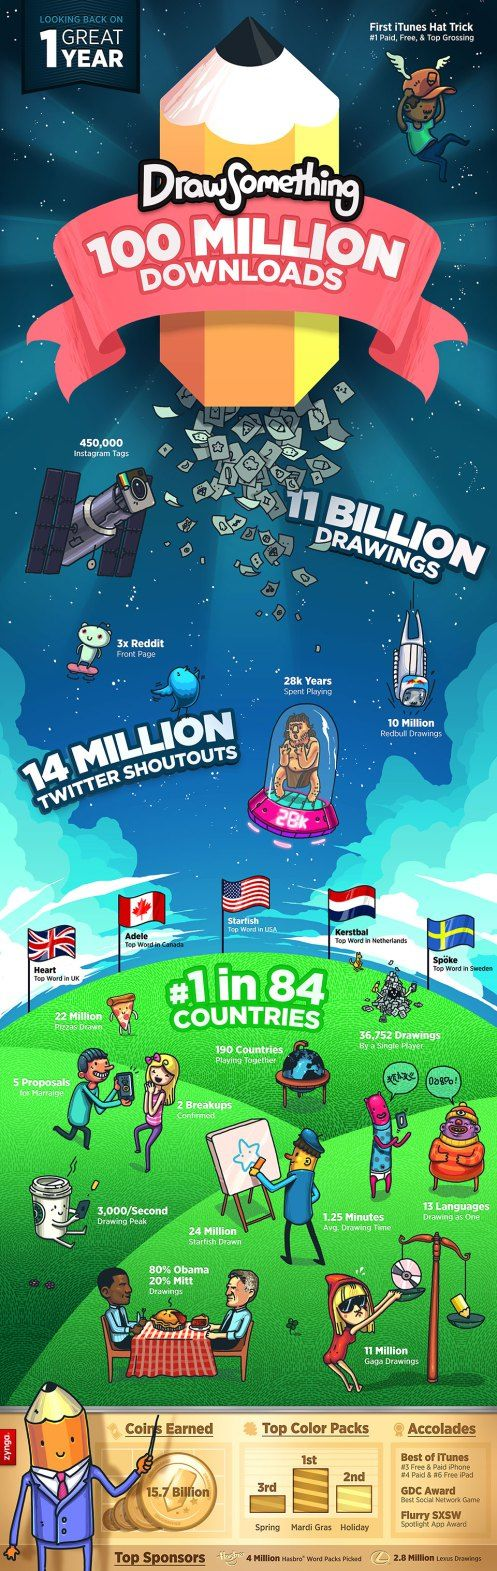 draw-something-infographic_final